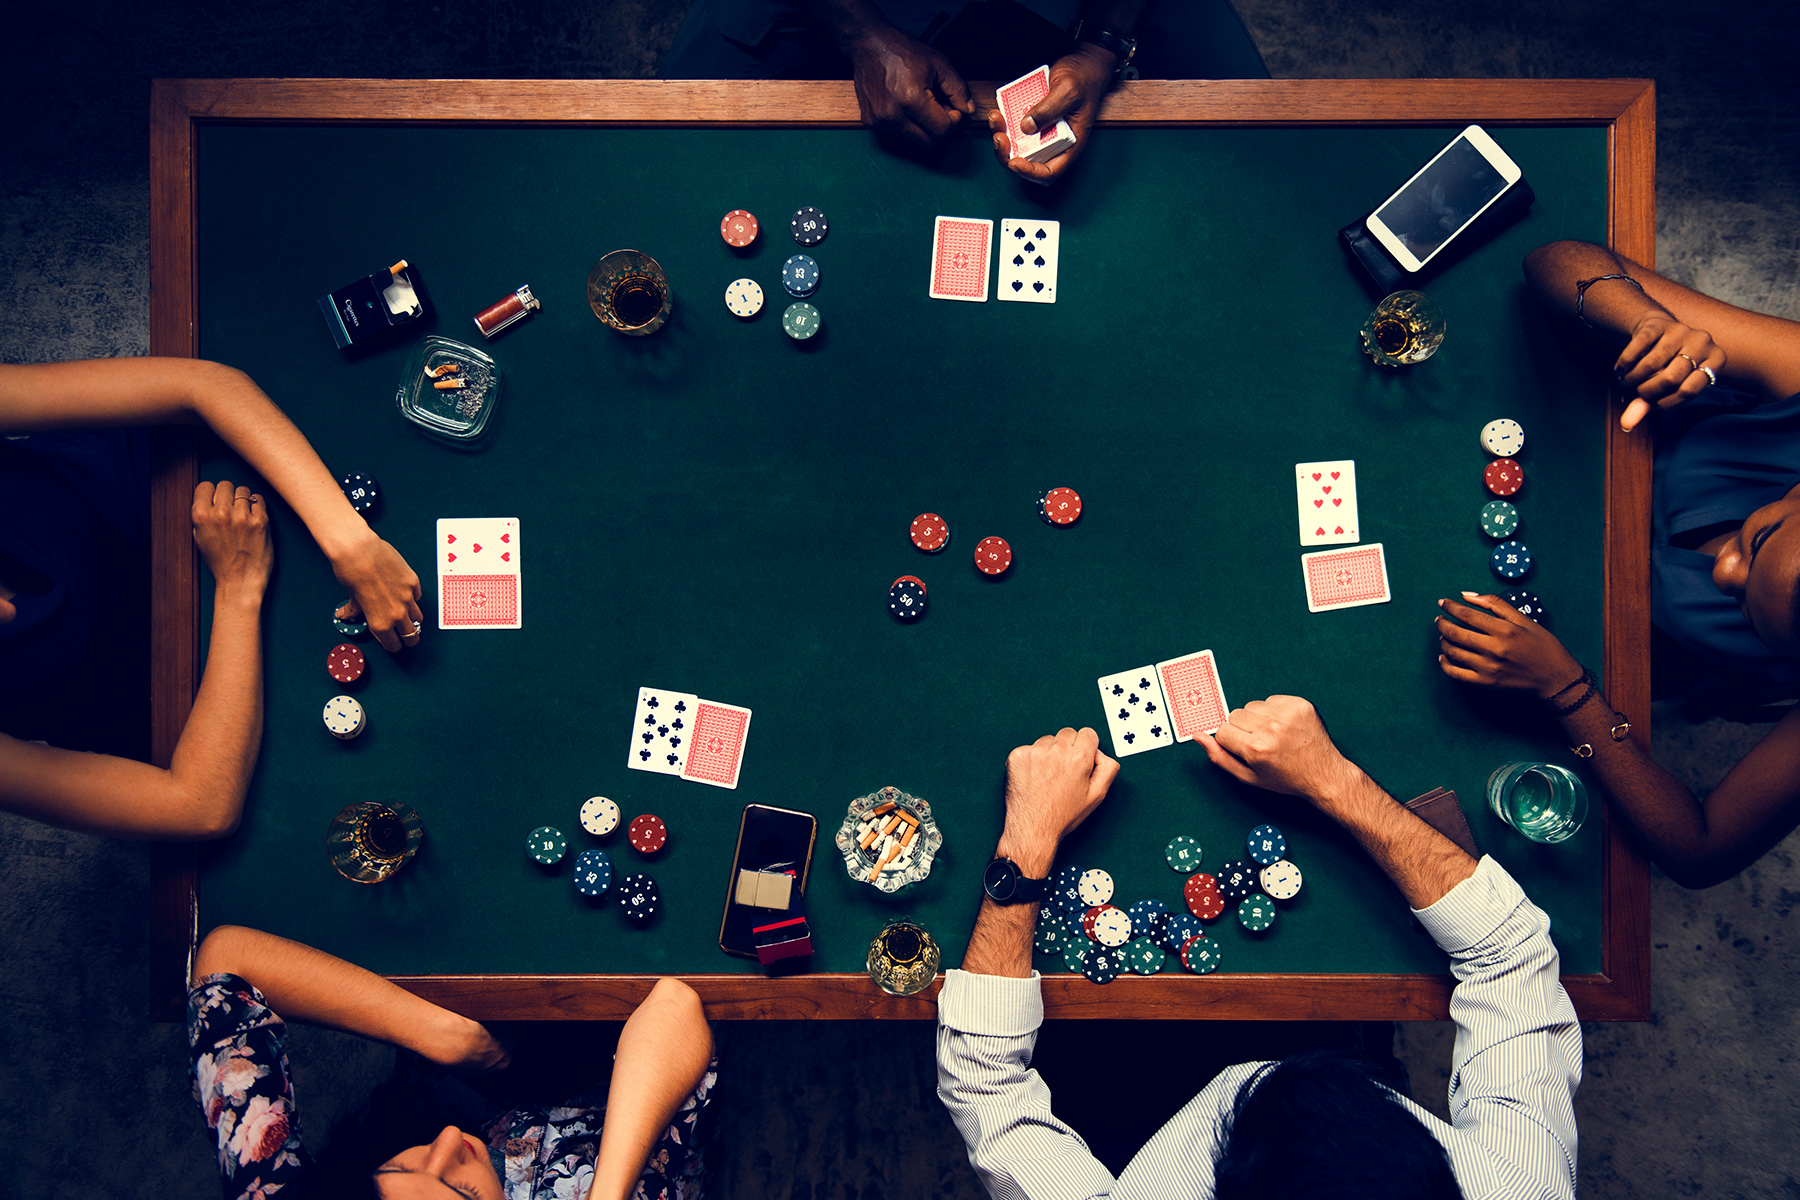 How To Begin An Online Gambling Business In 6 Easy Steps